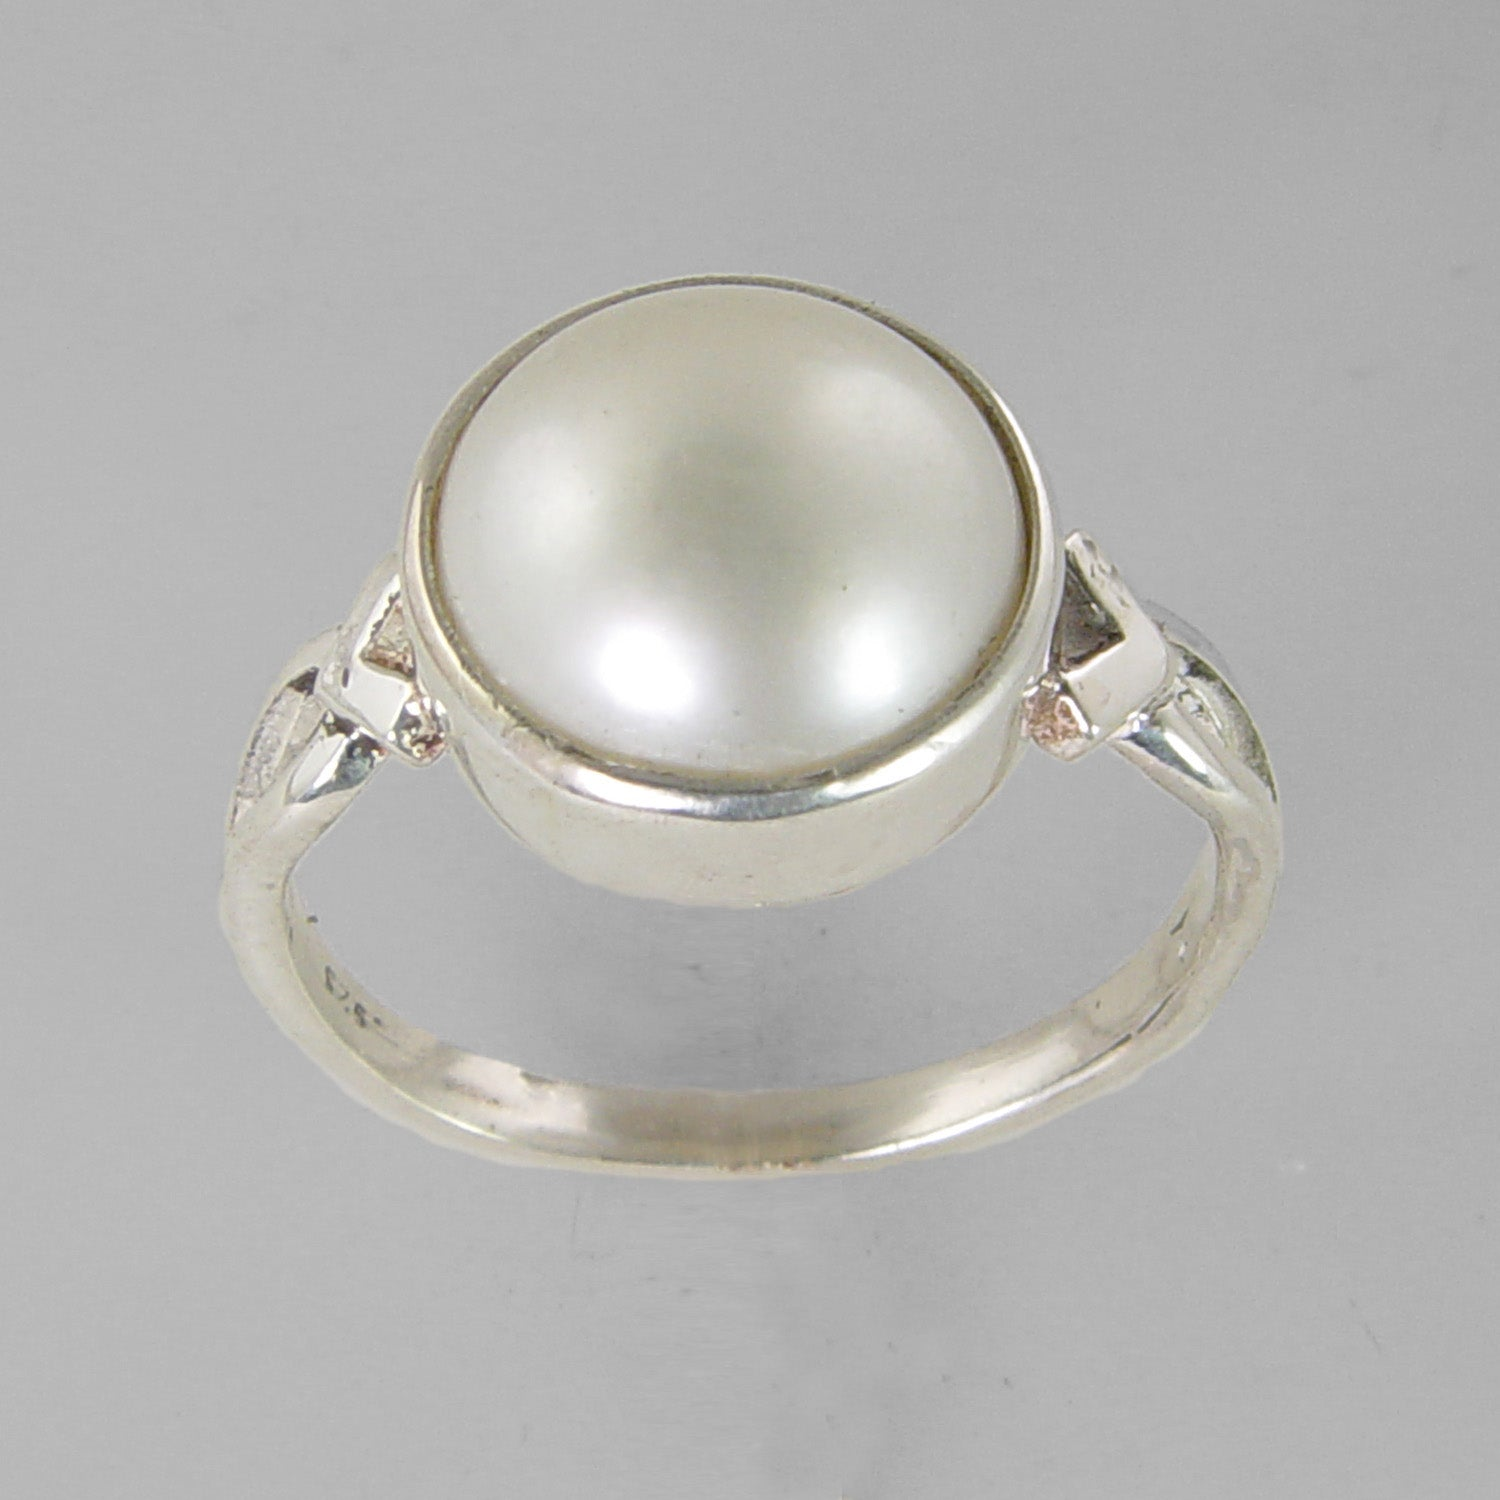 Pearl 8.5 ct Freshwater Pearl V Shank Sterling Silver Ring, Size 9